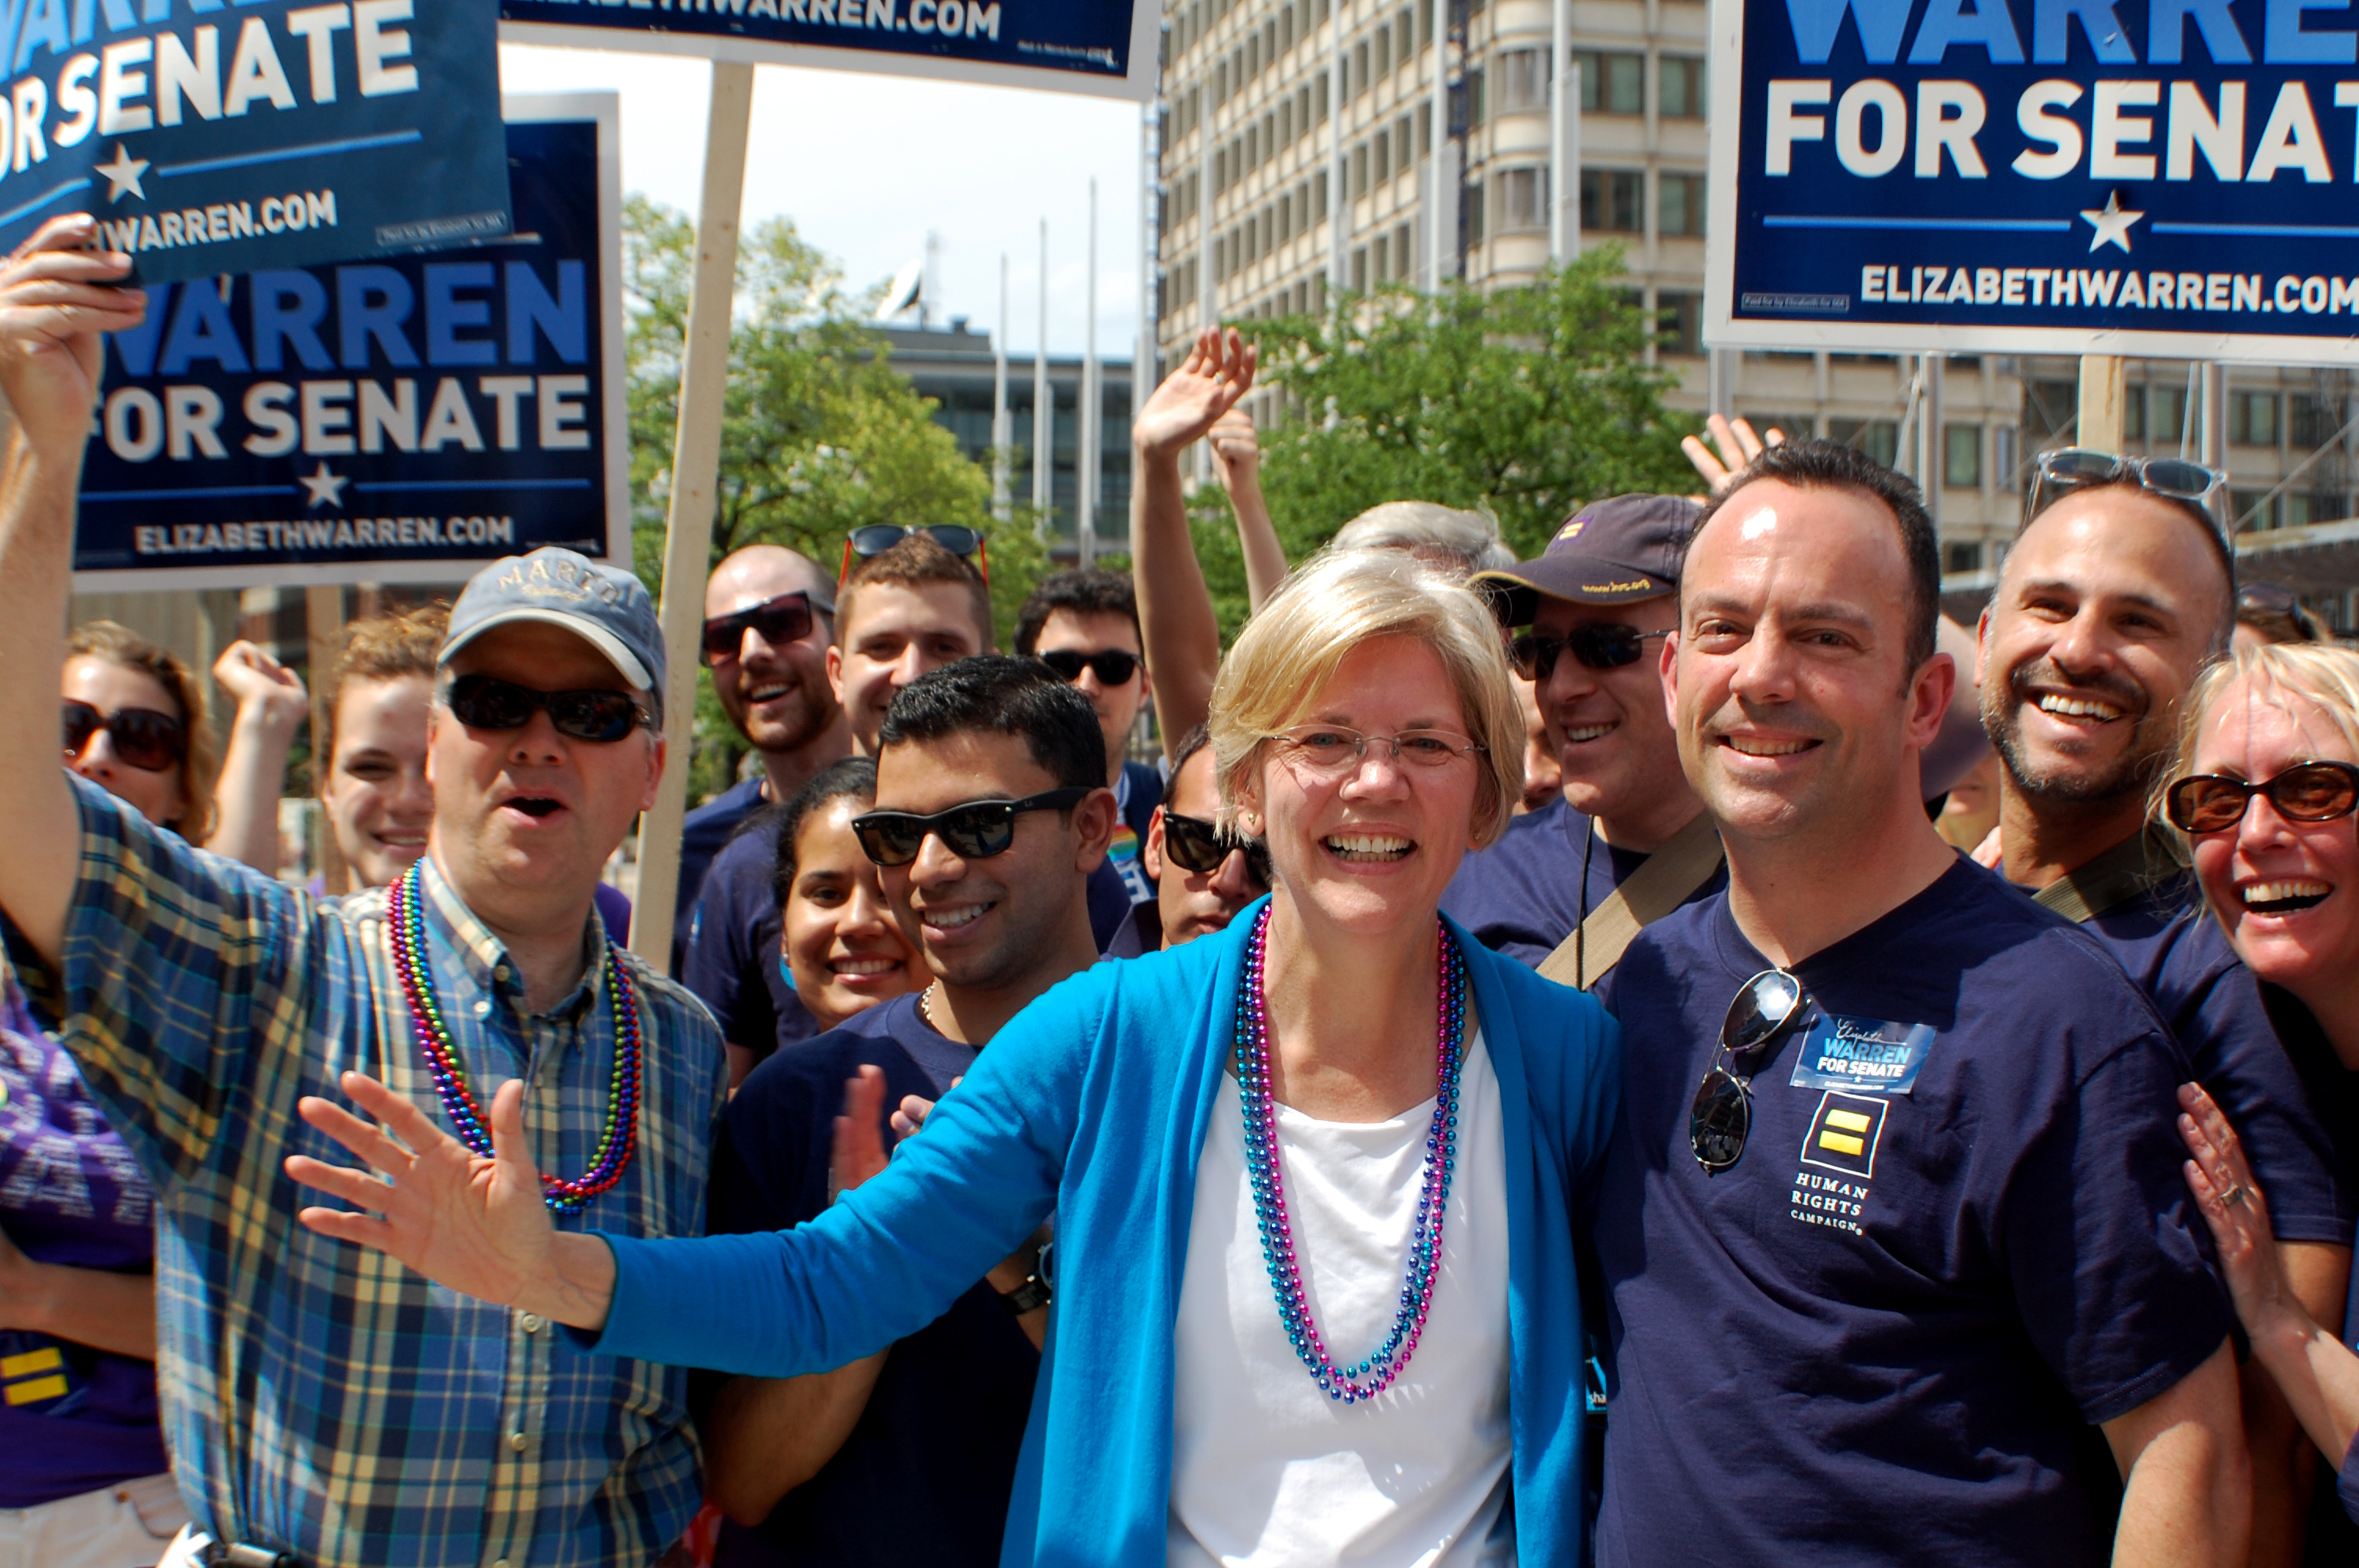 U.S. Senate hopeful Elizabeth Warren poses with supporters at the Boston Pride Parade.